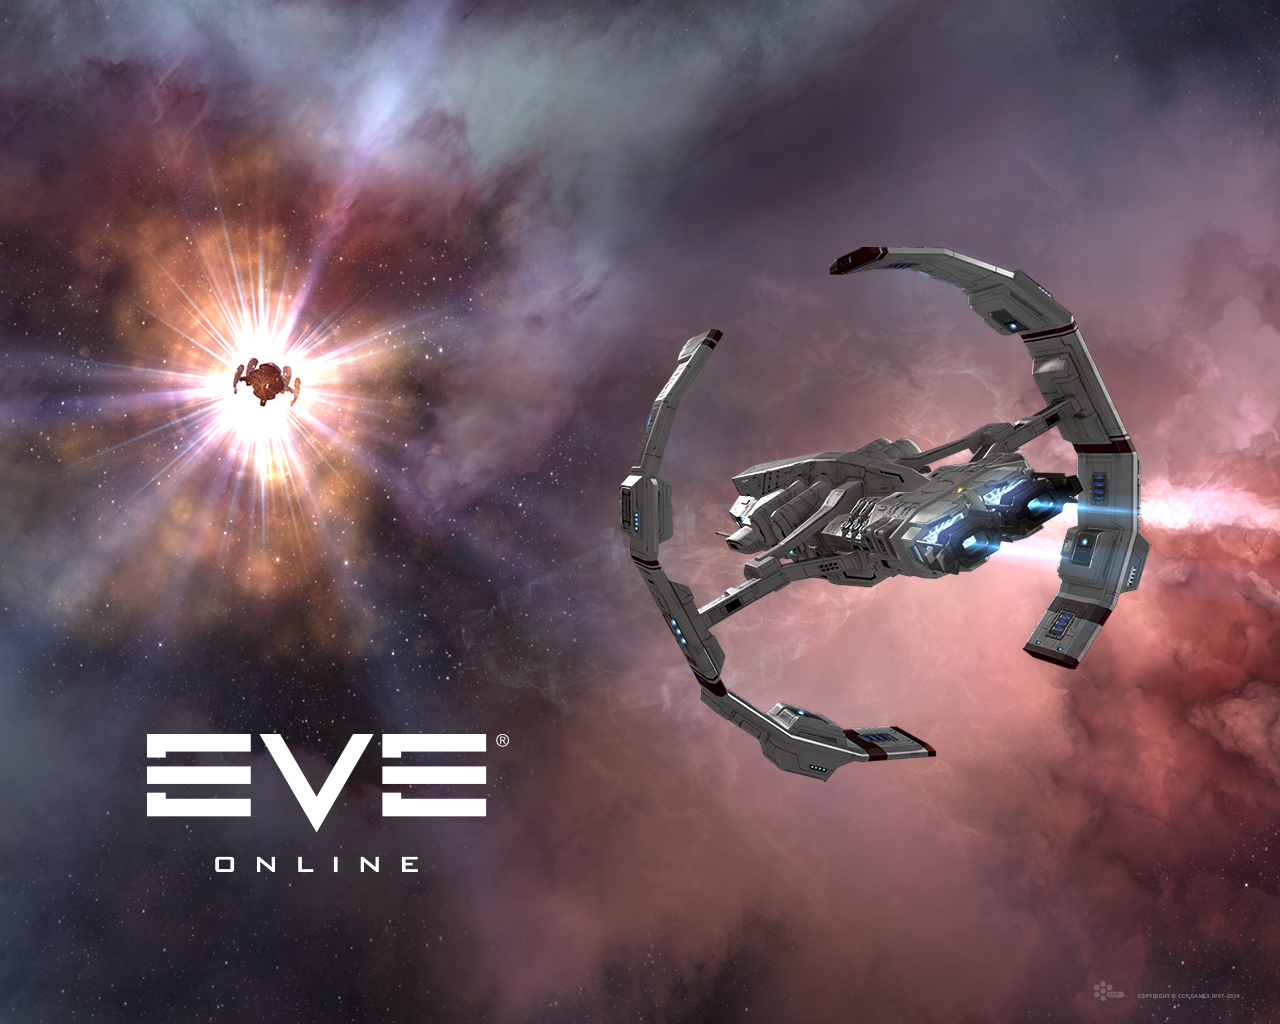 DTDMfreeblogforallaboutComputer: TRENDS - EVE Online - How